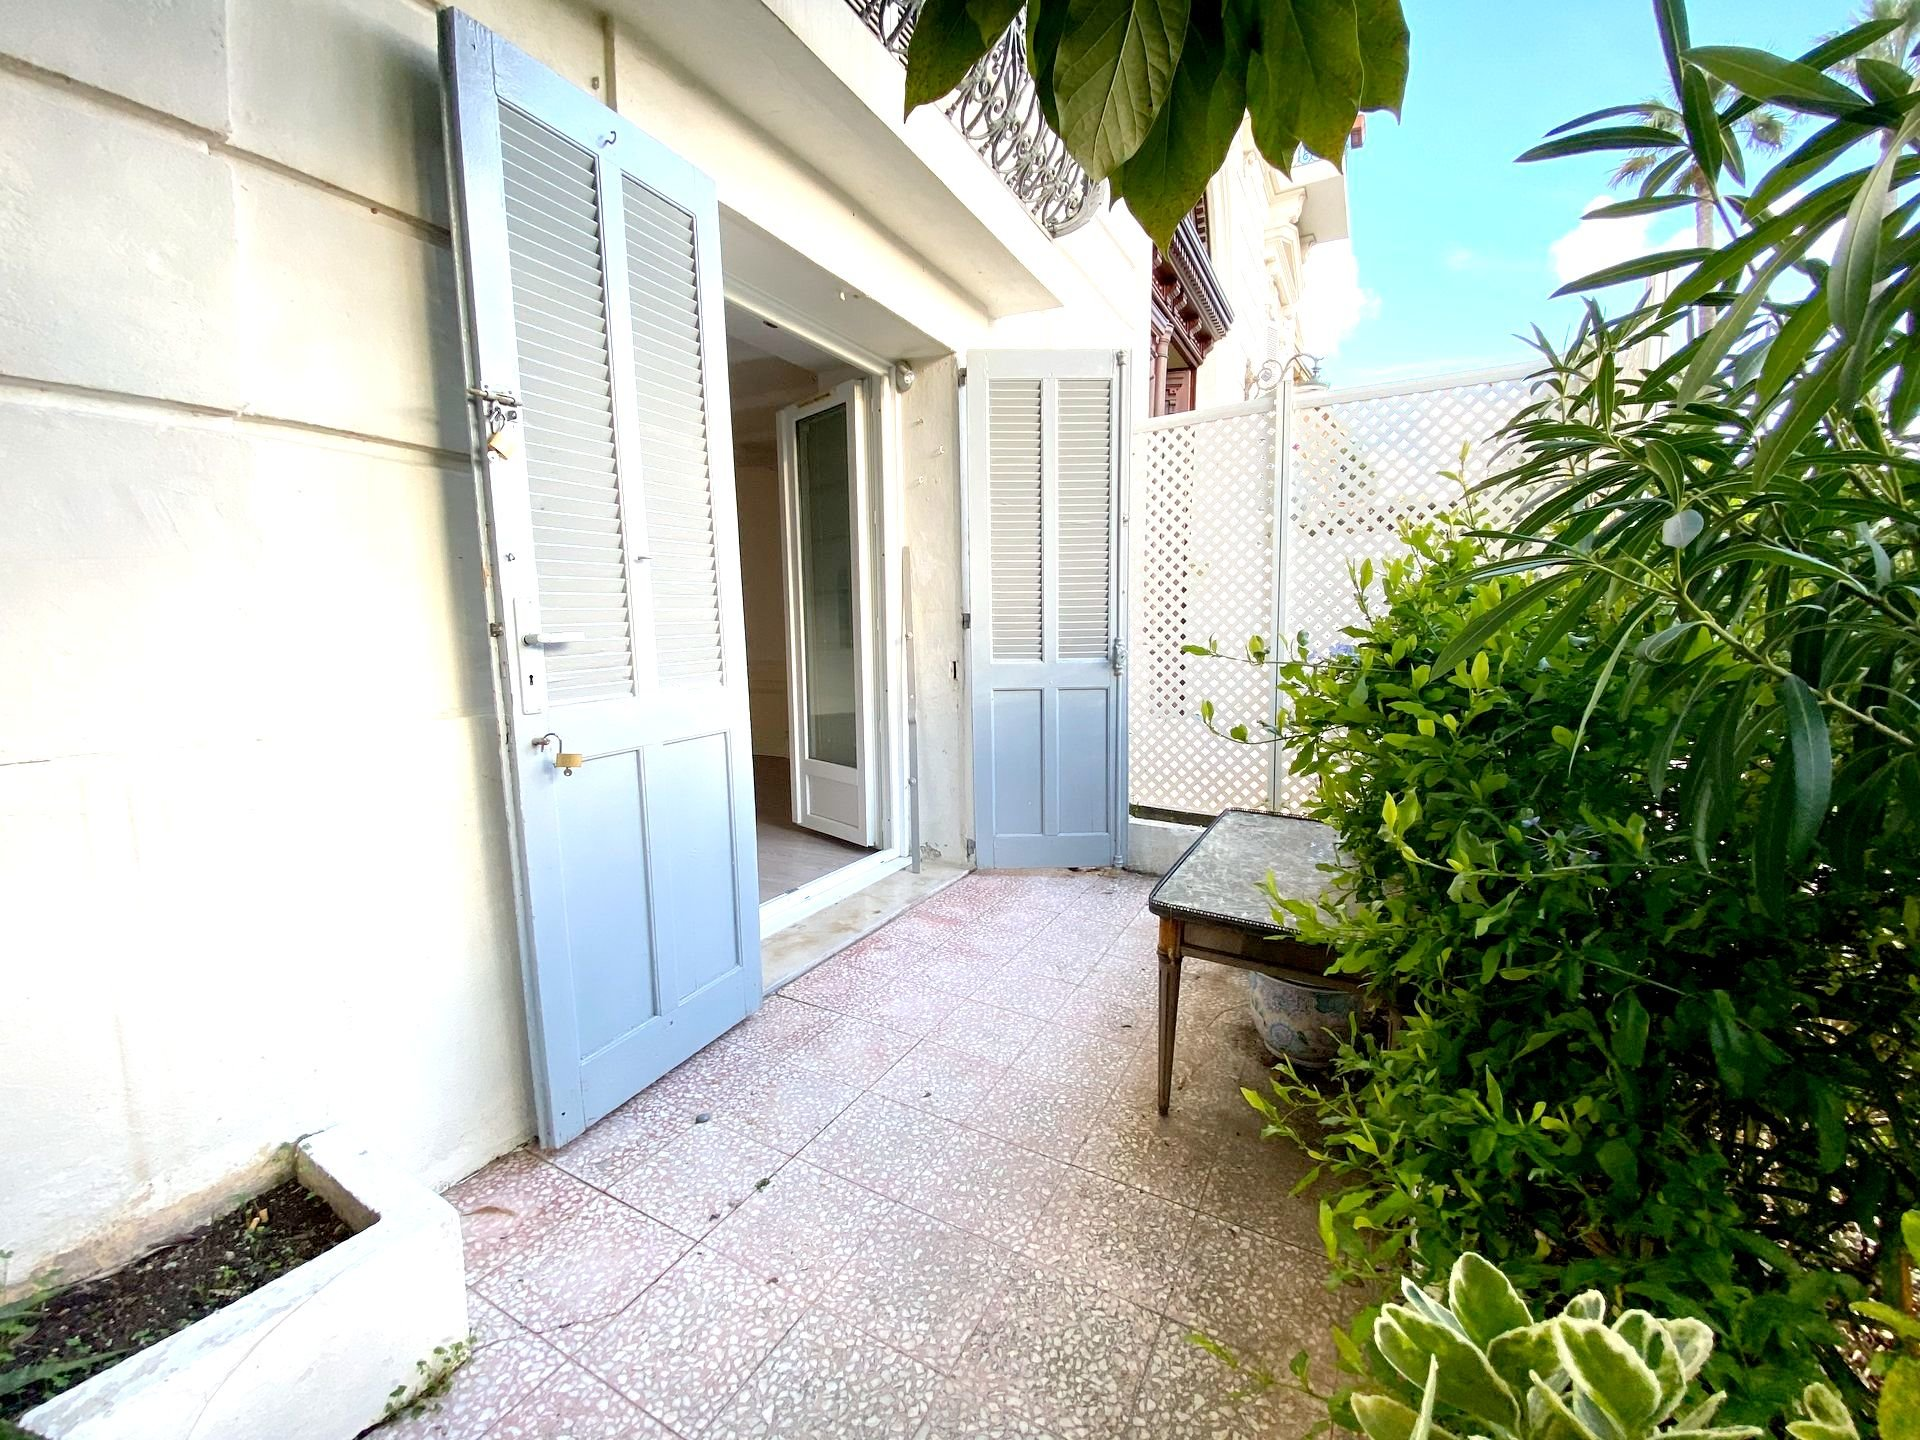 CANNES French Riviera Apartment 1 bedroom for sale